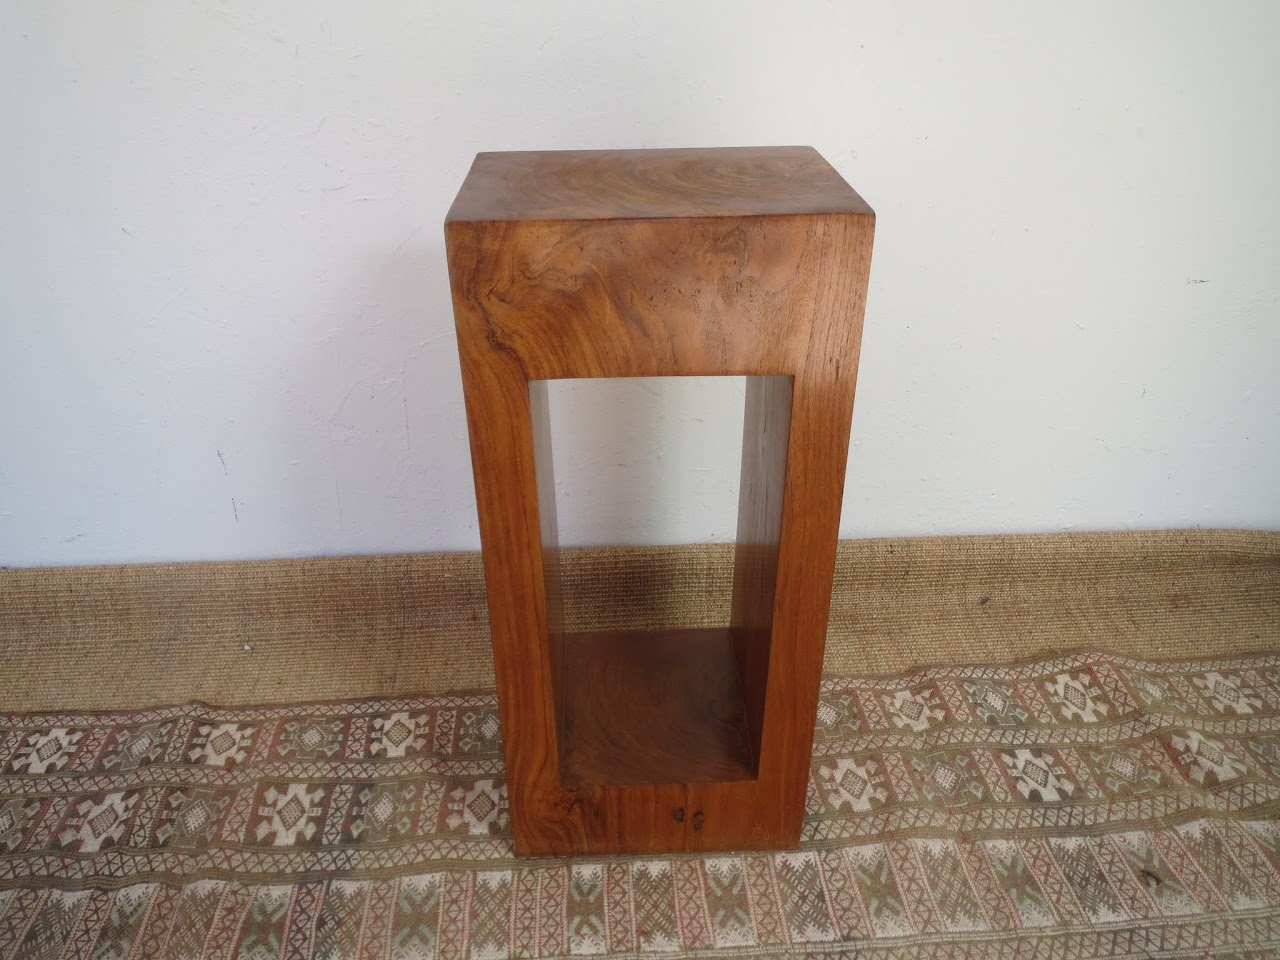 Solid Wood Side Table (Light Wood)